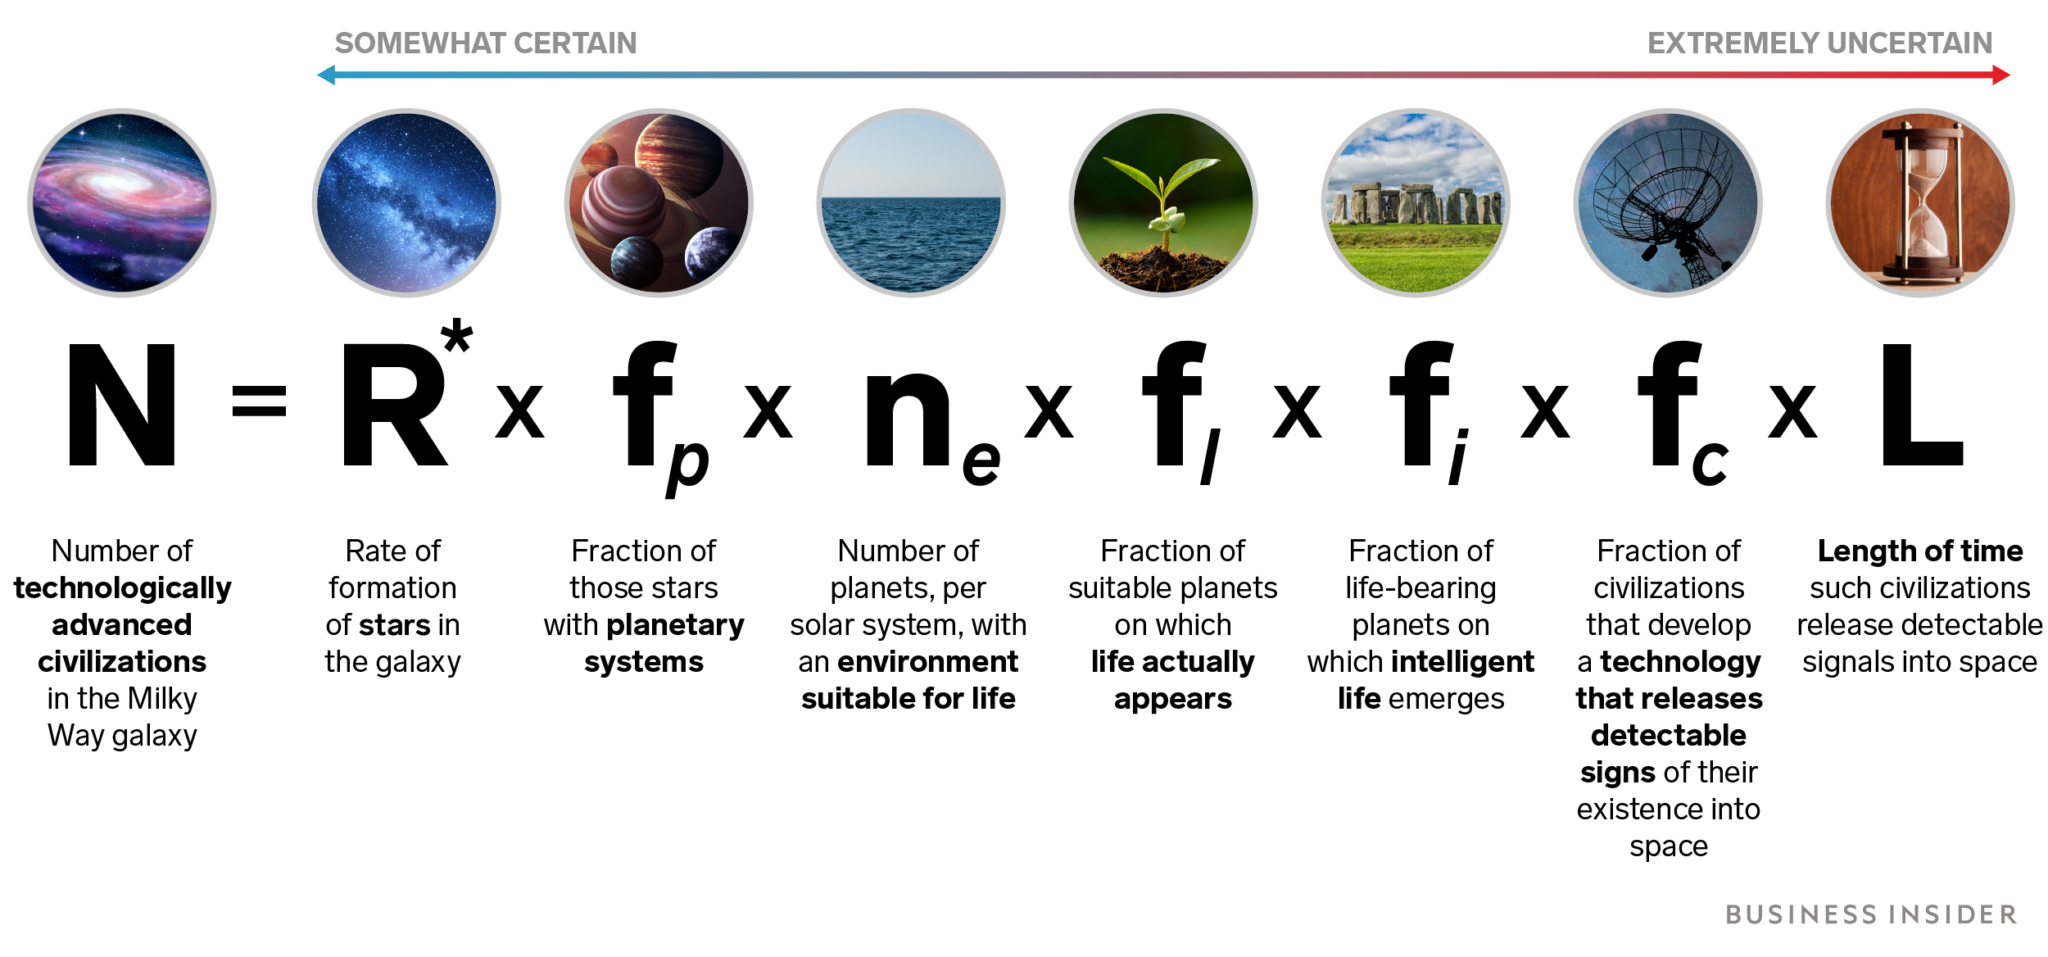 Drake equation was proposed by Dr. Frank Drake in 1961